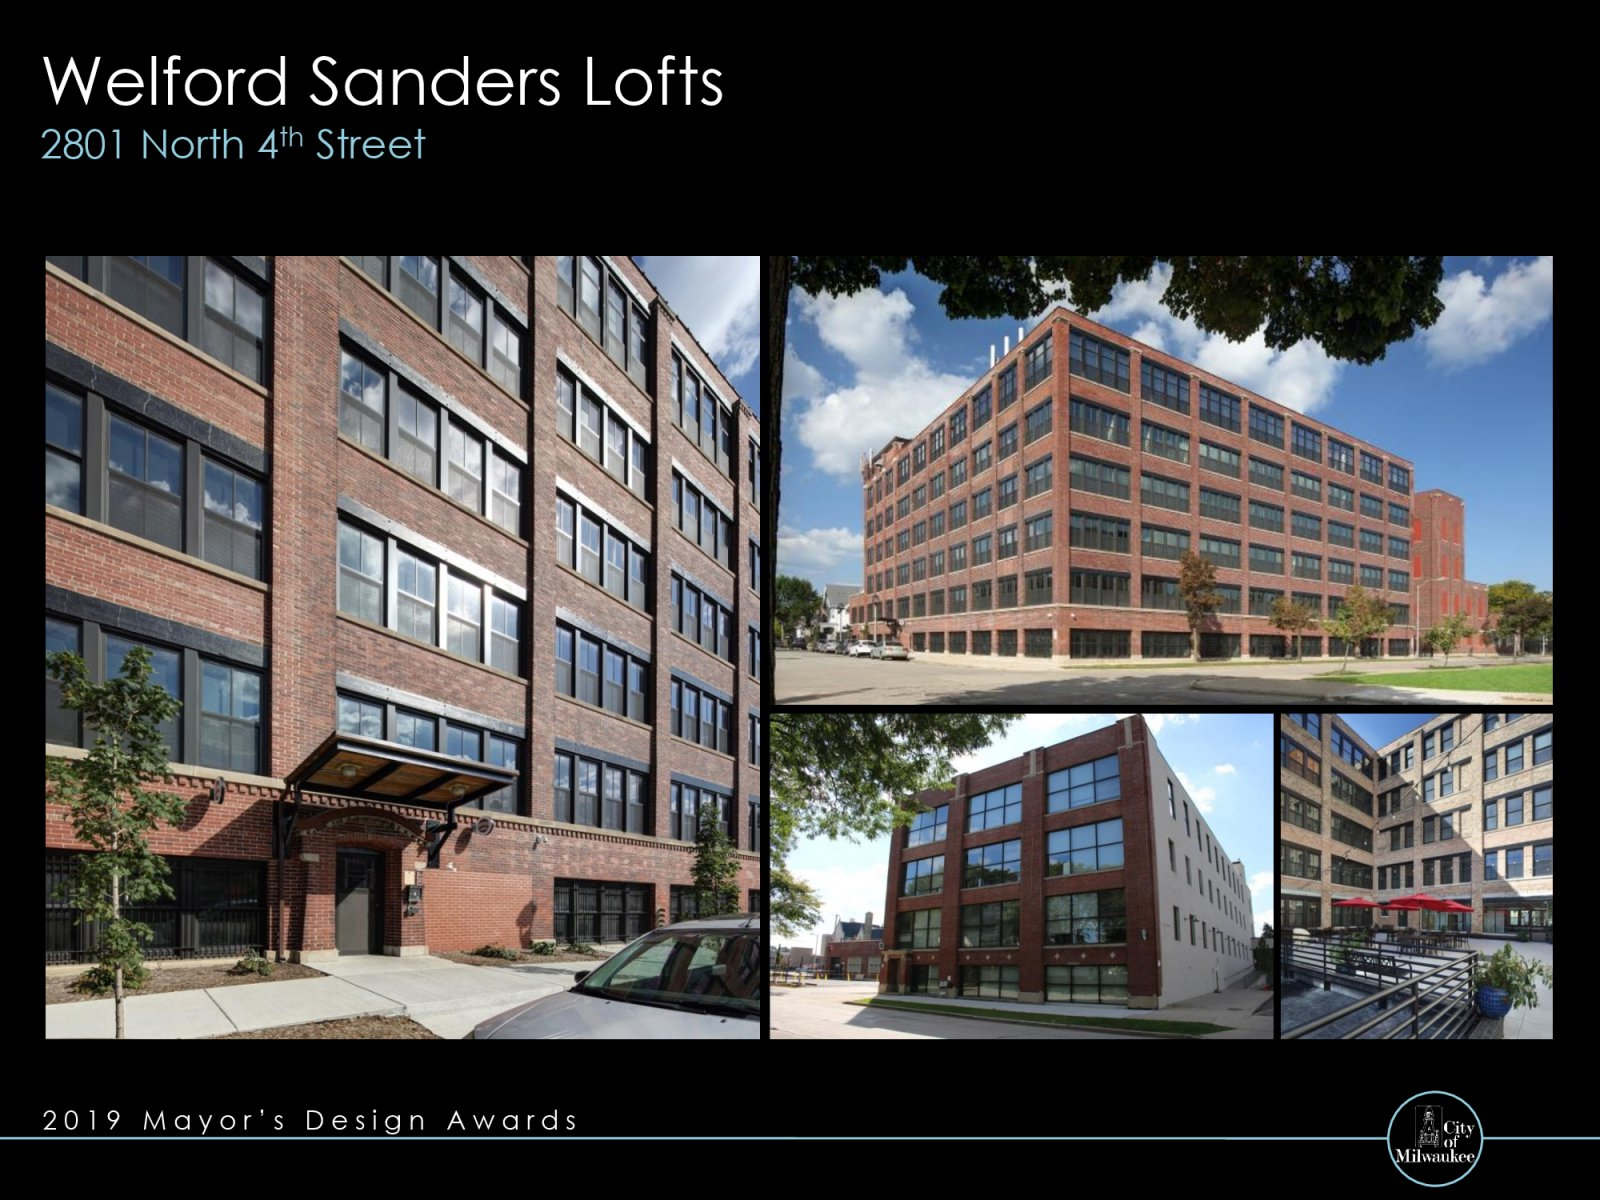 Welford Sanders Lofts